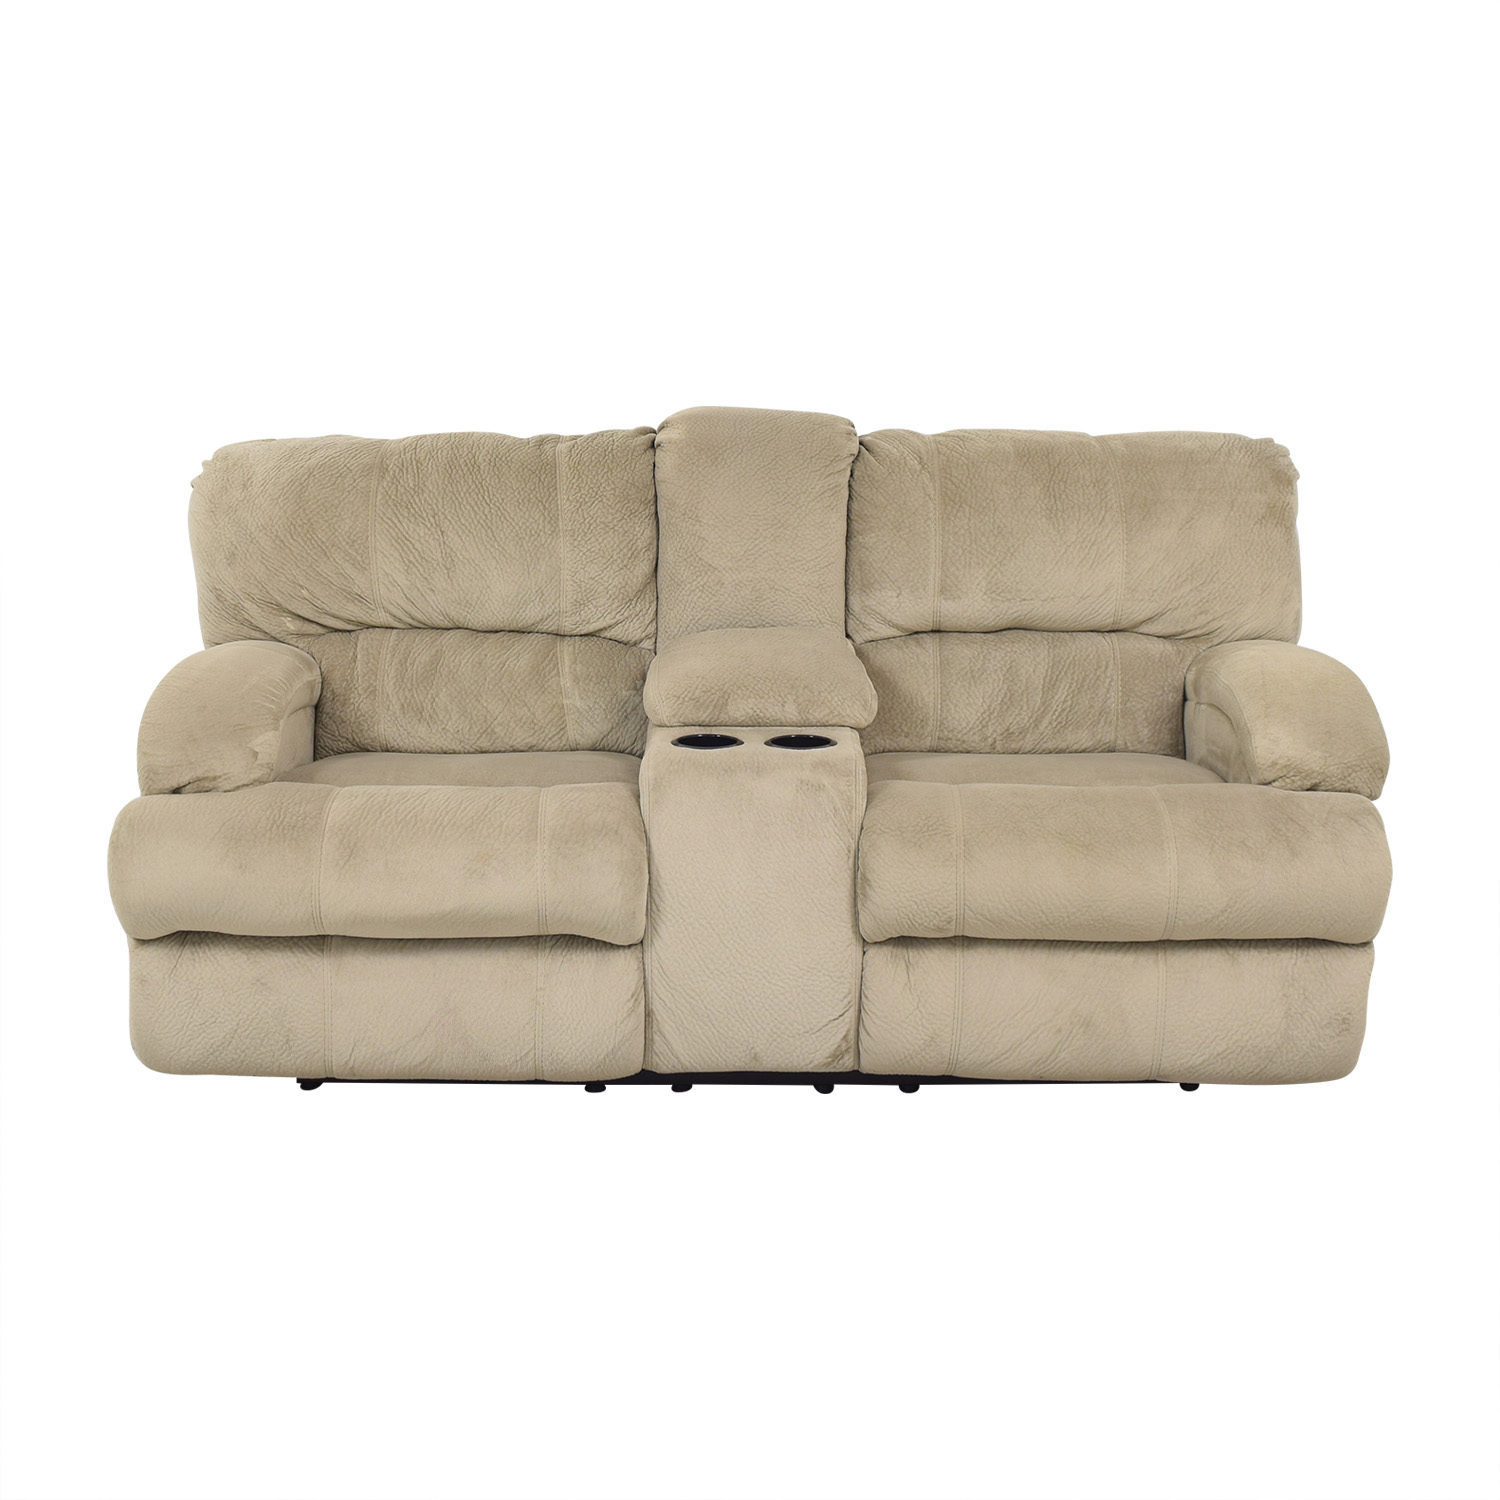 Raymour & Flanigan Raymour & Flanigan Microfiber 2-Seat Manual Recliner discount